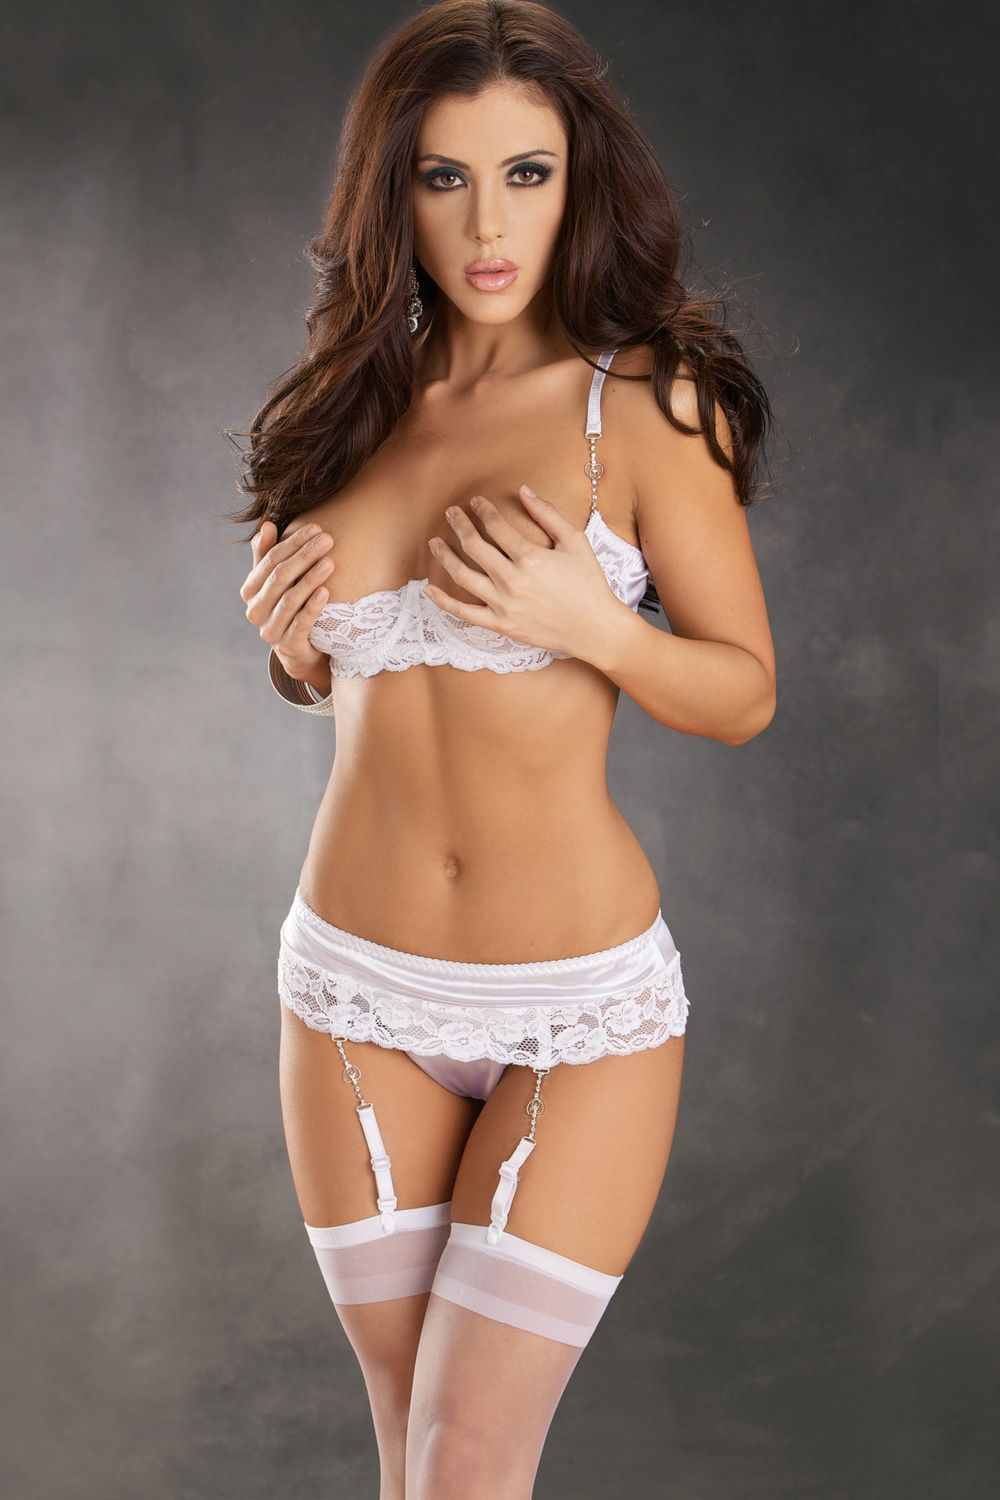 098adc98f79 Honeymoon Surprise Set - Stretch satin and lace trim underwire shelf bra  with adjustable straps and hook-n-eye back. Matching lace up back  garterbelt